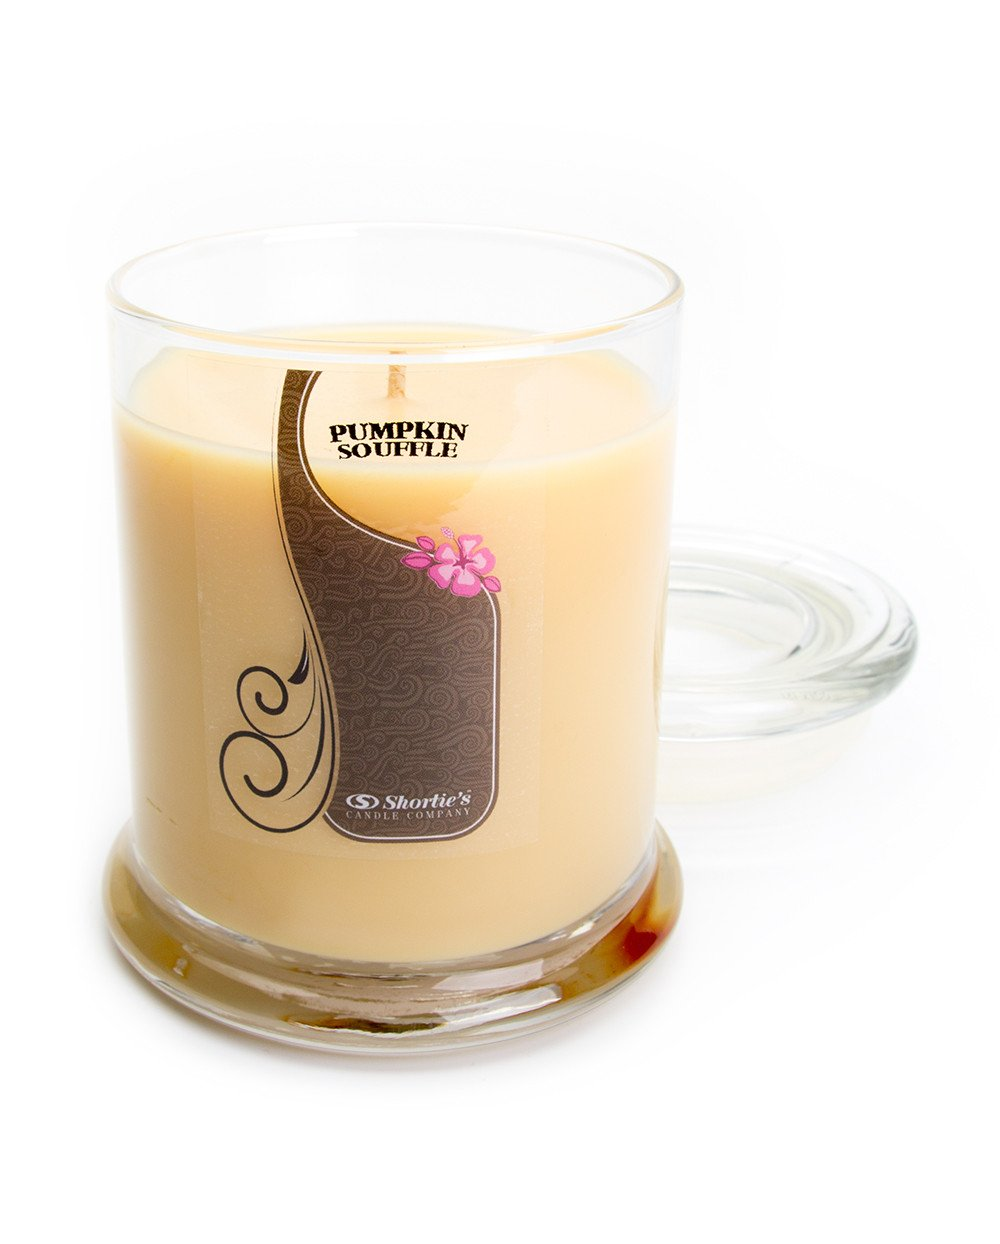 Pumpkin Souffle Candle - Medium Beige 10 Oz. Highly Scented Jar Candle - Made with Natural Oils - Bakery & Food Collection